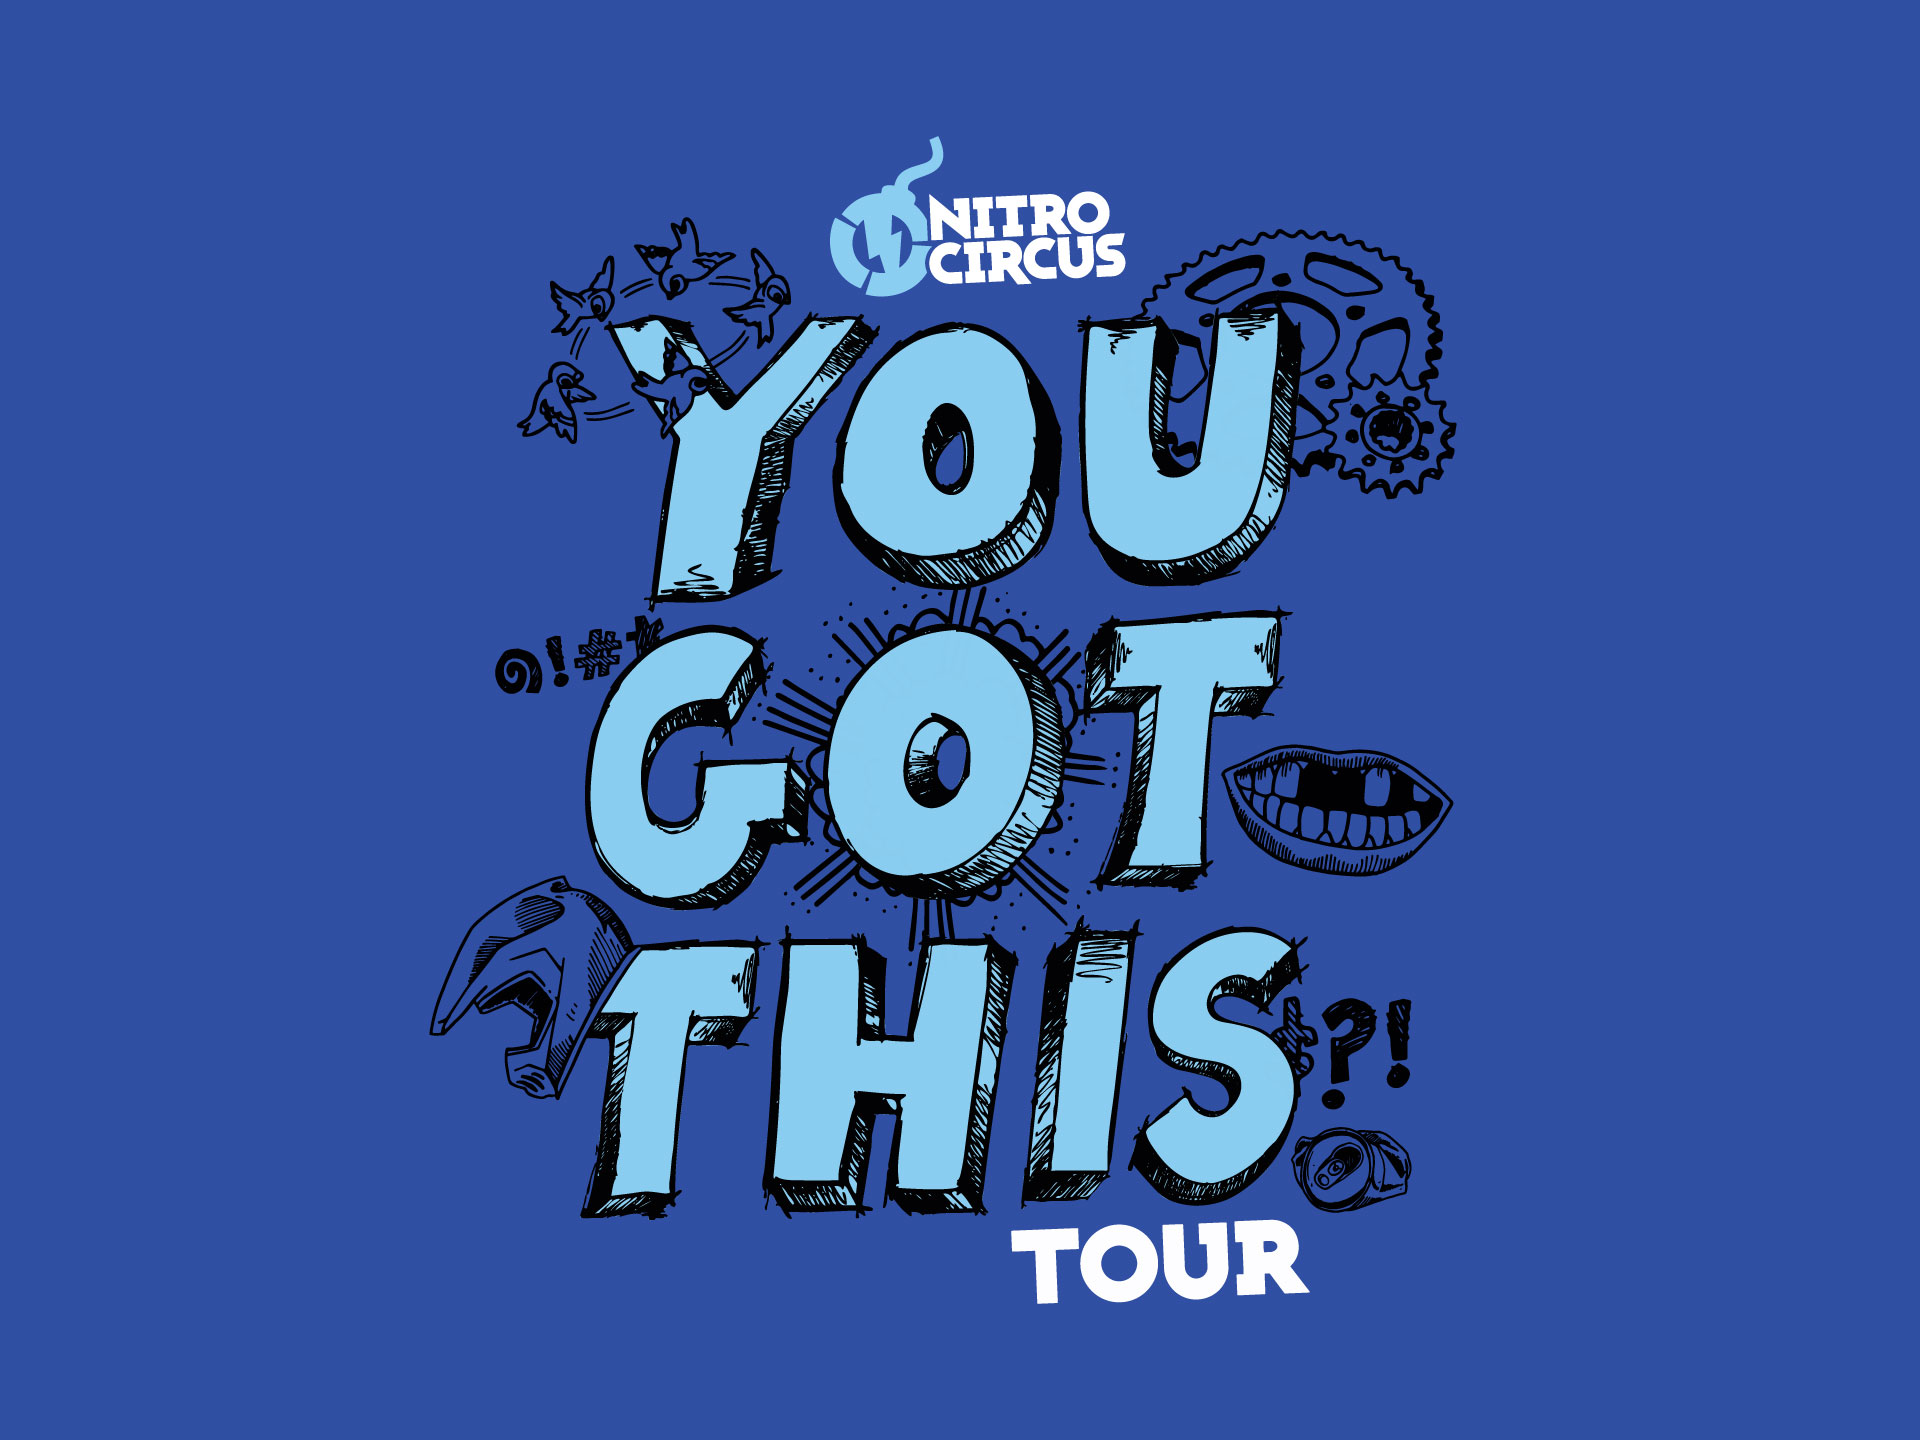 You Got This Tour Superbase x Nitro Circus